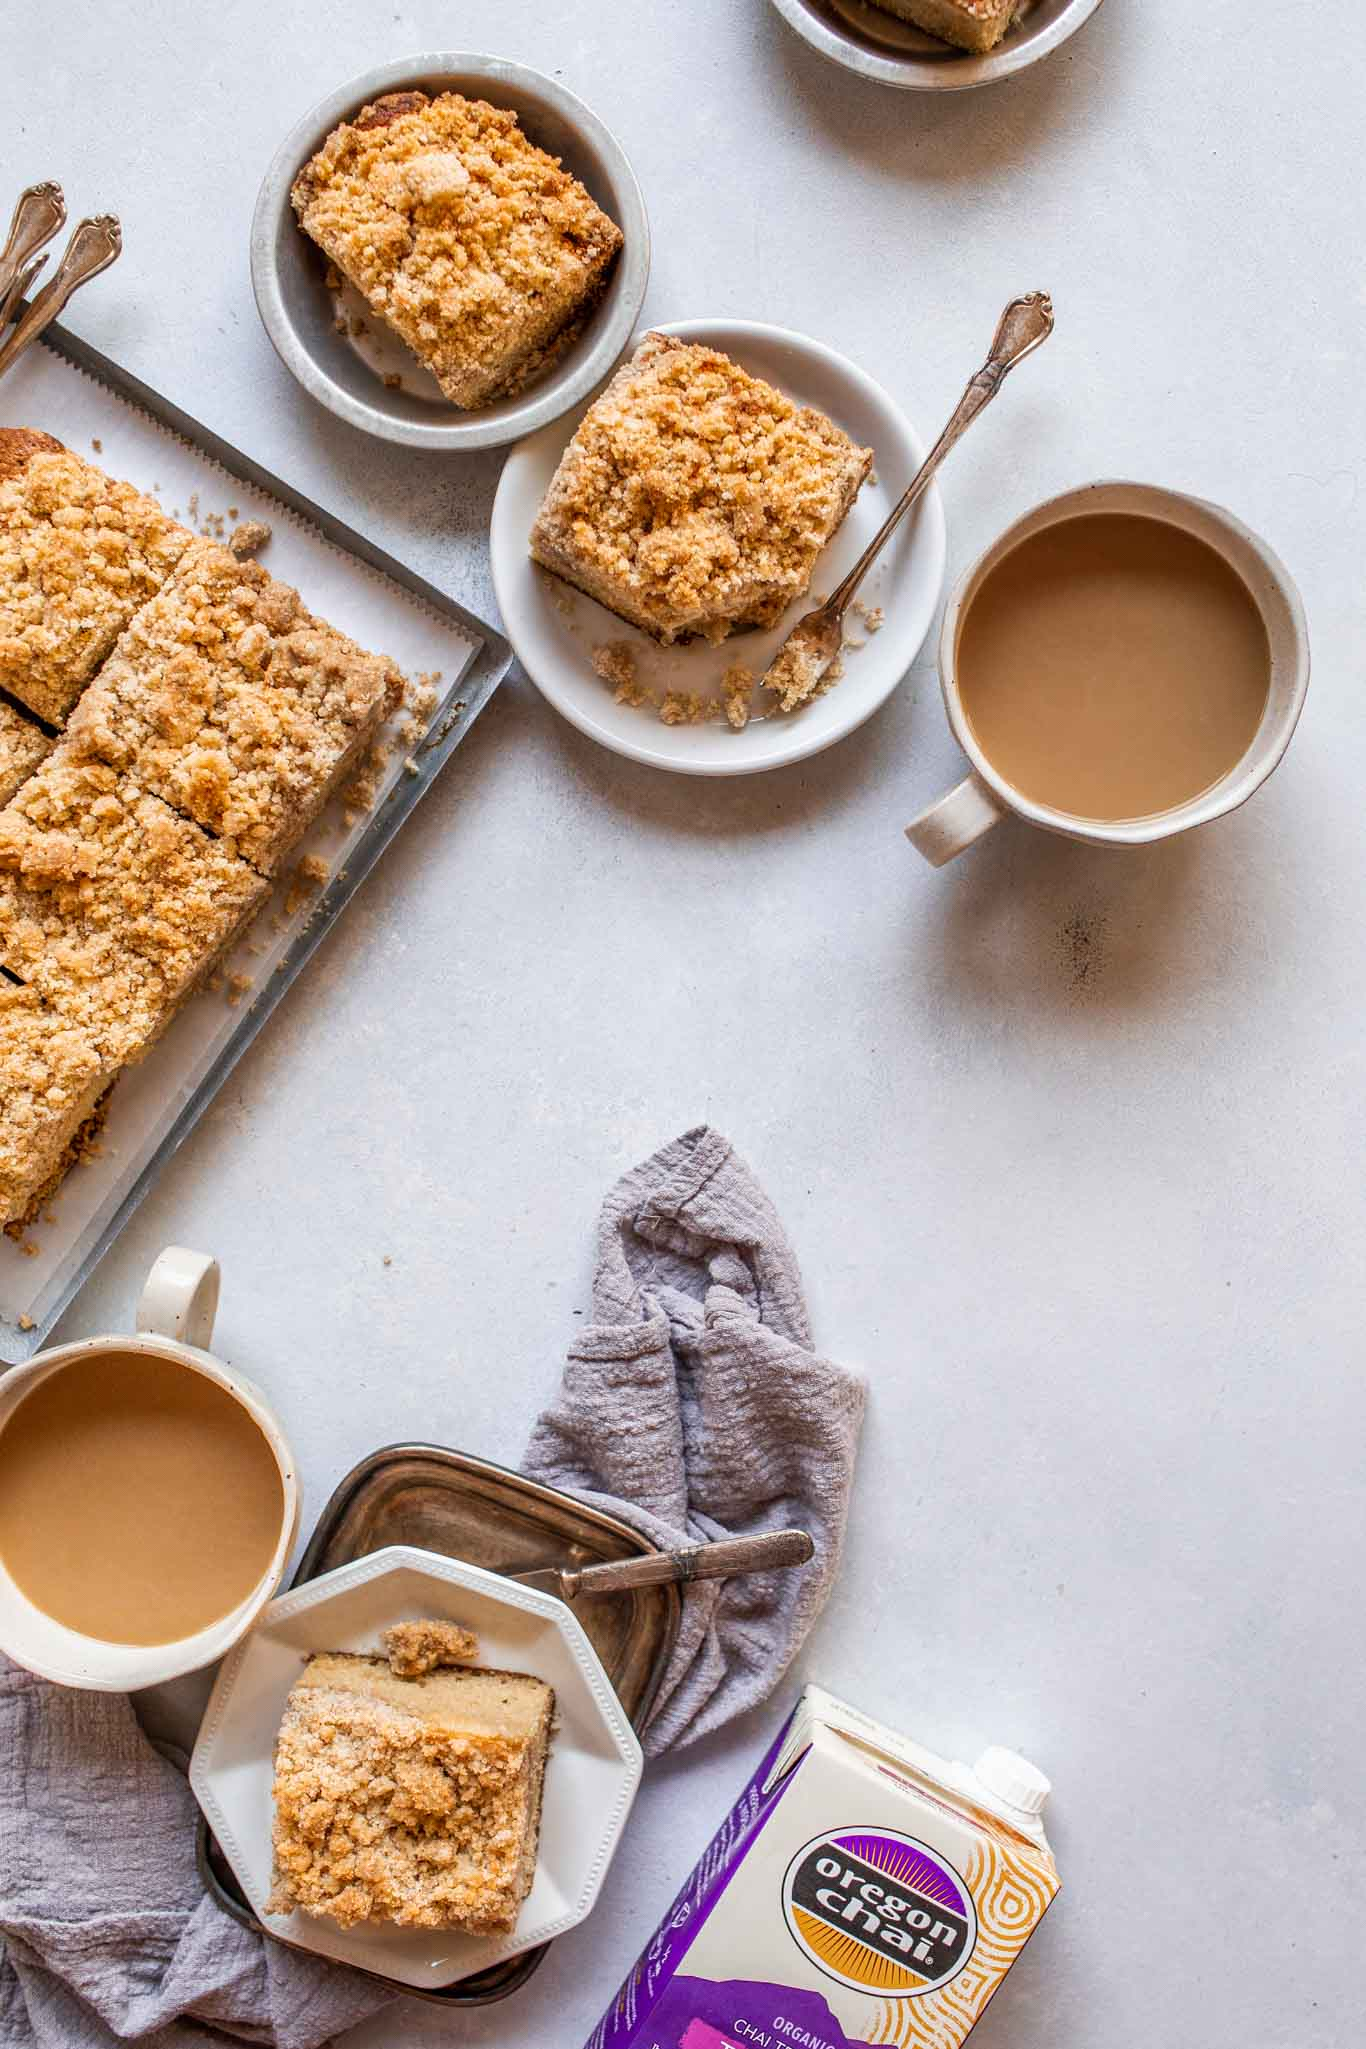 Overhead shot of chai spiced crumb cake next to coffee.